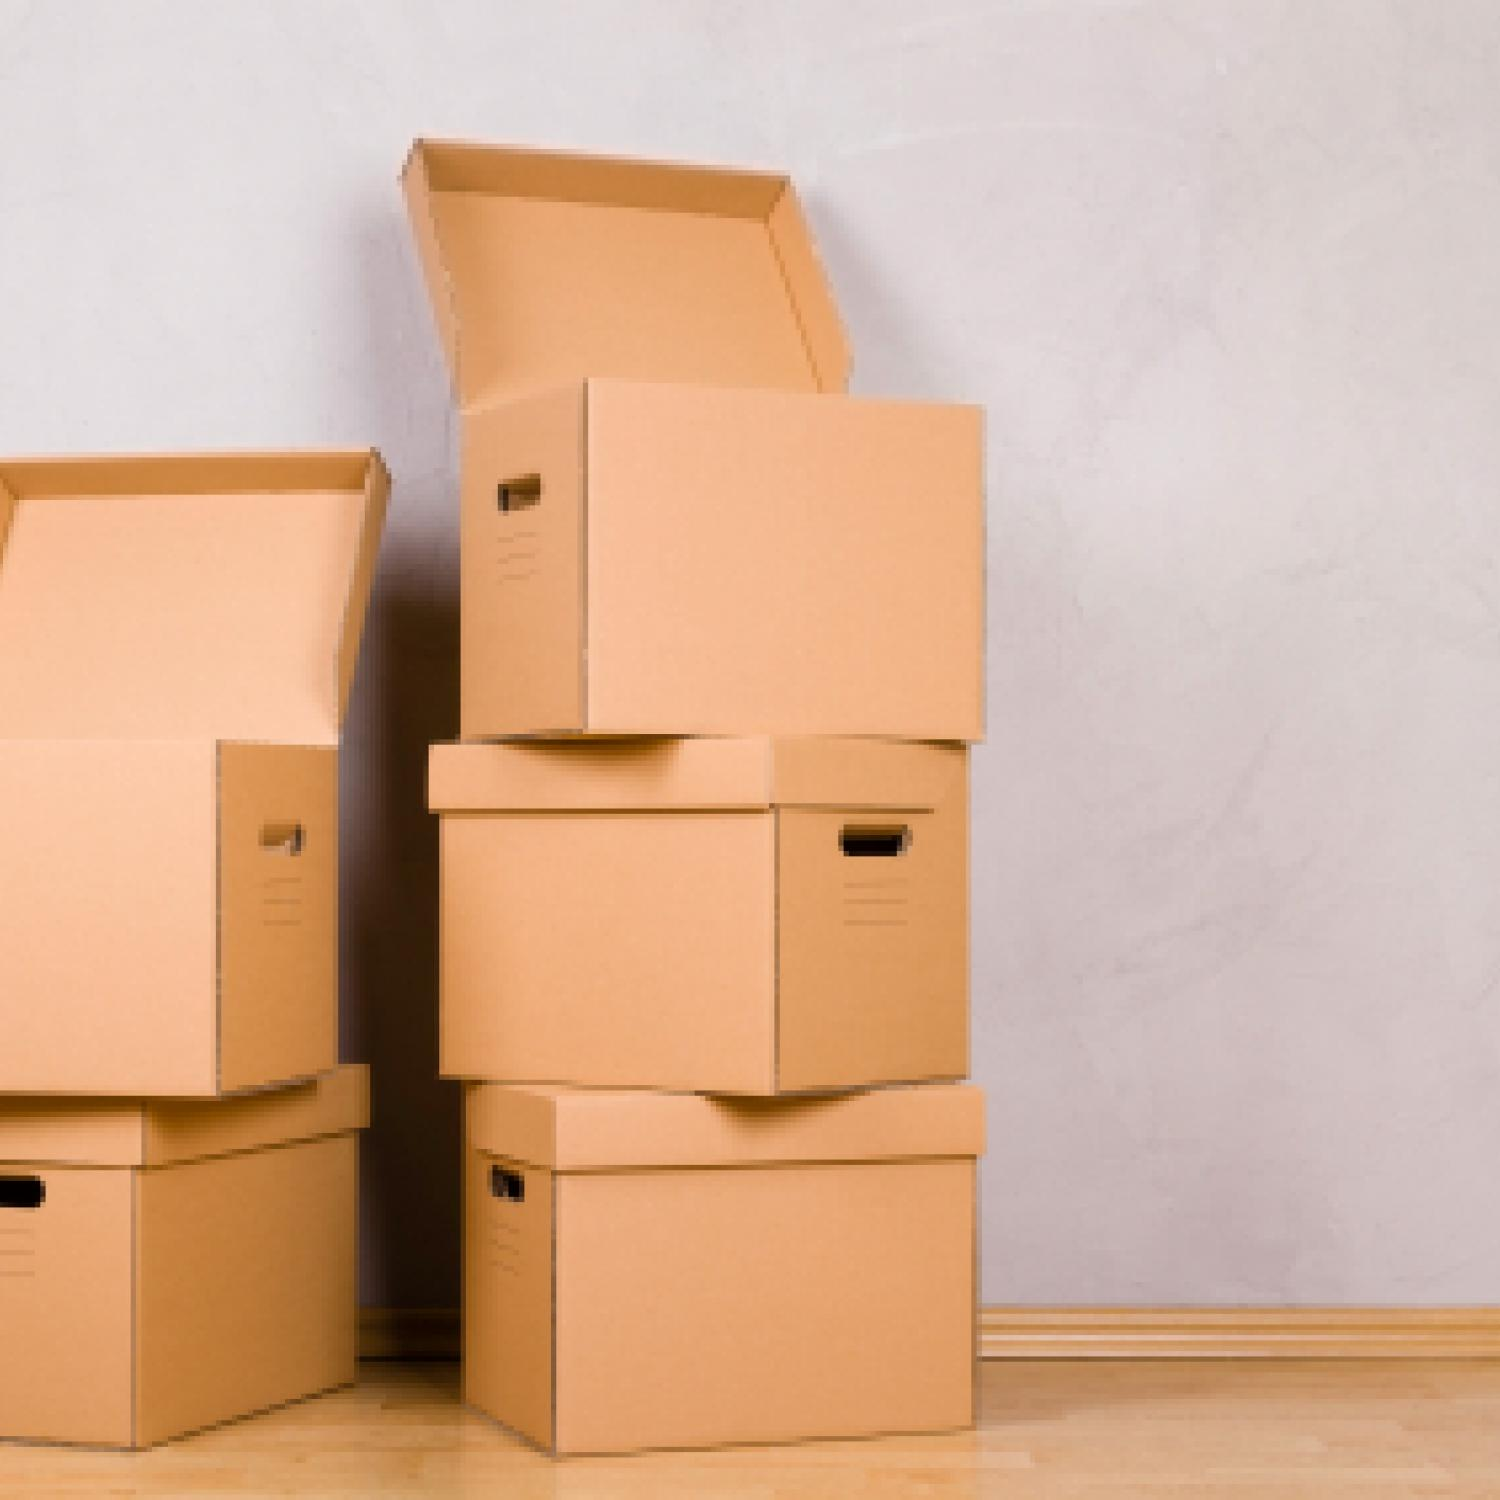 classroom toys replaced with cardboard boxes parenting. Black Bedroom Furniture Sets. Home Design Ideas